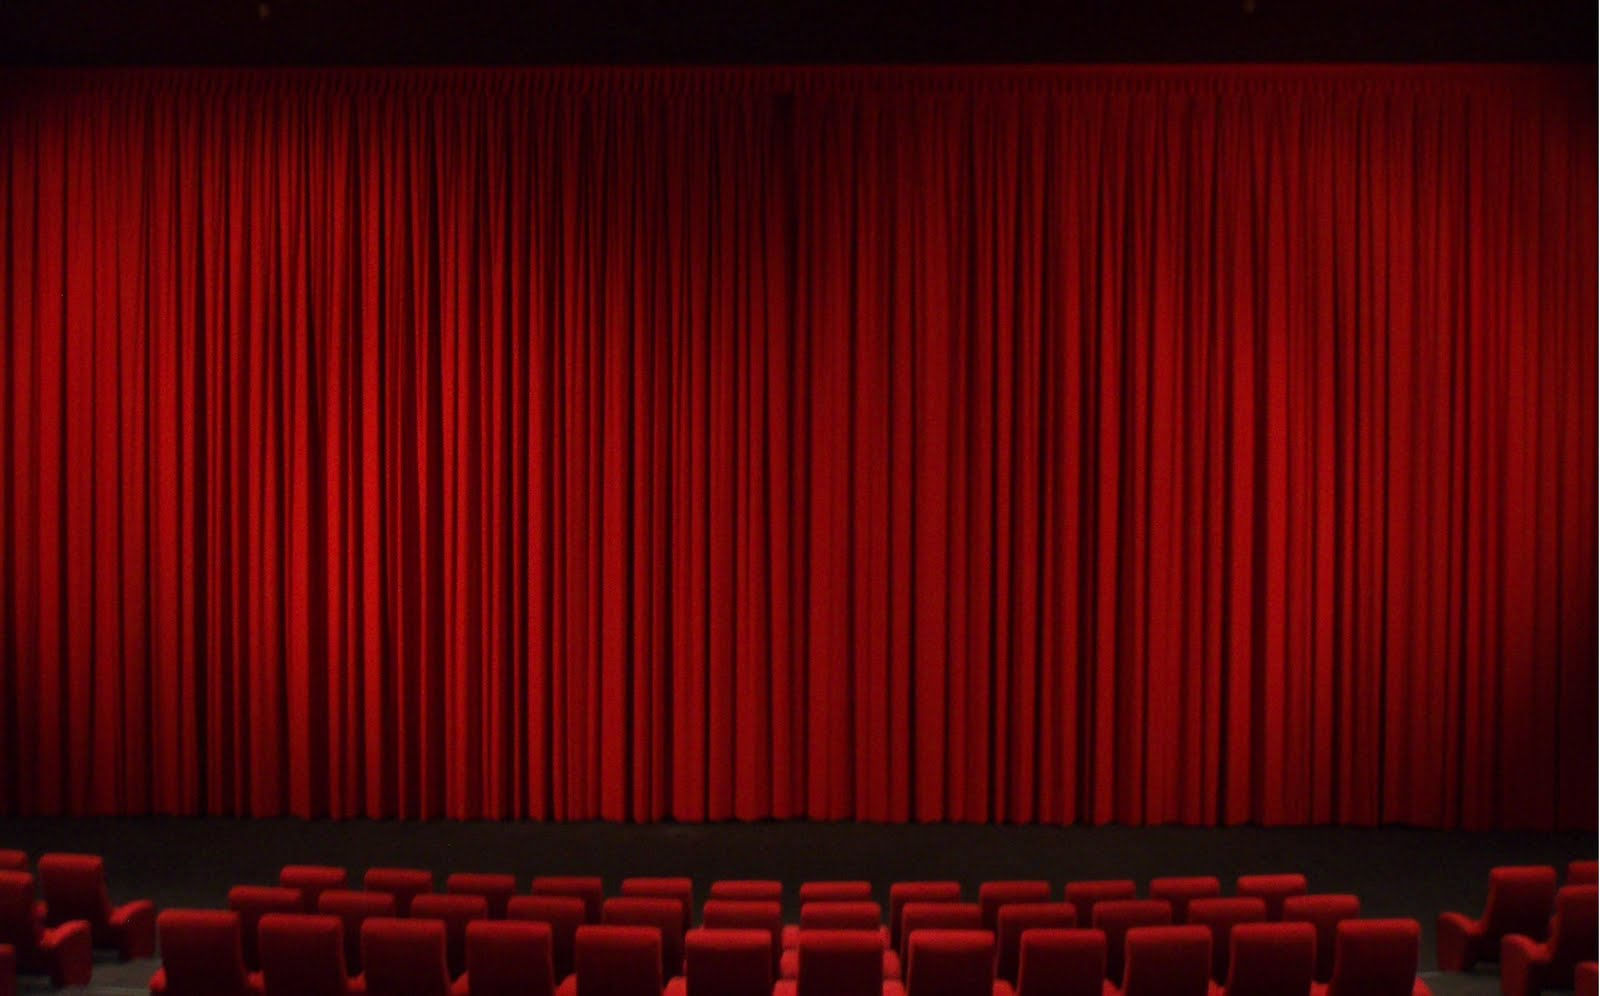 Curtain clipart real stage Red Stage Real Curtains Curtain